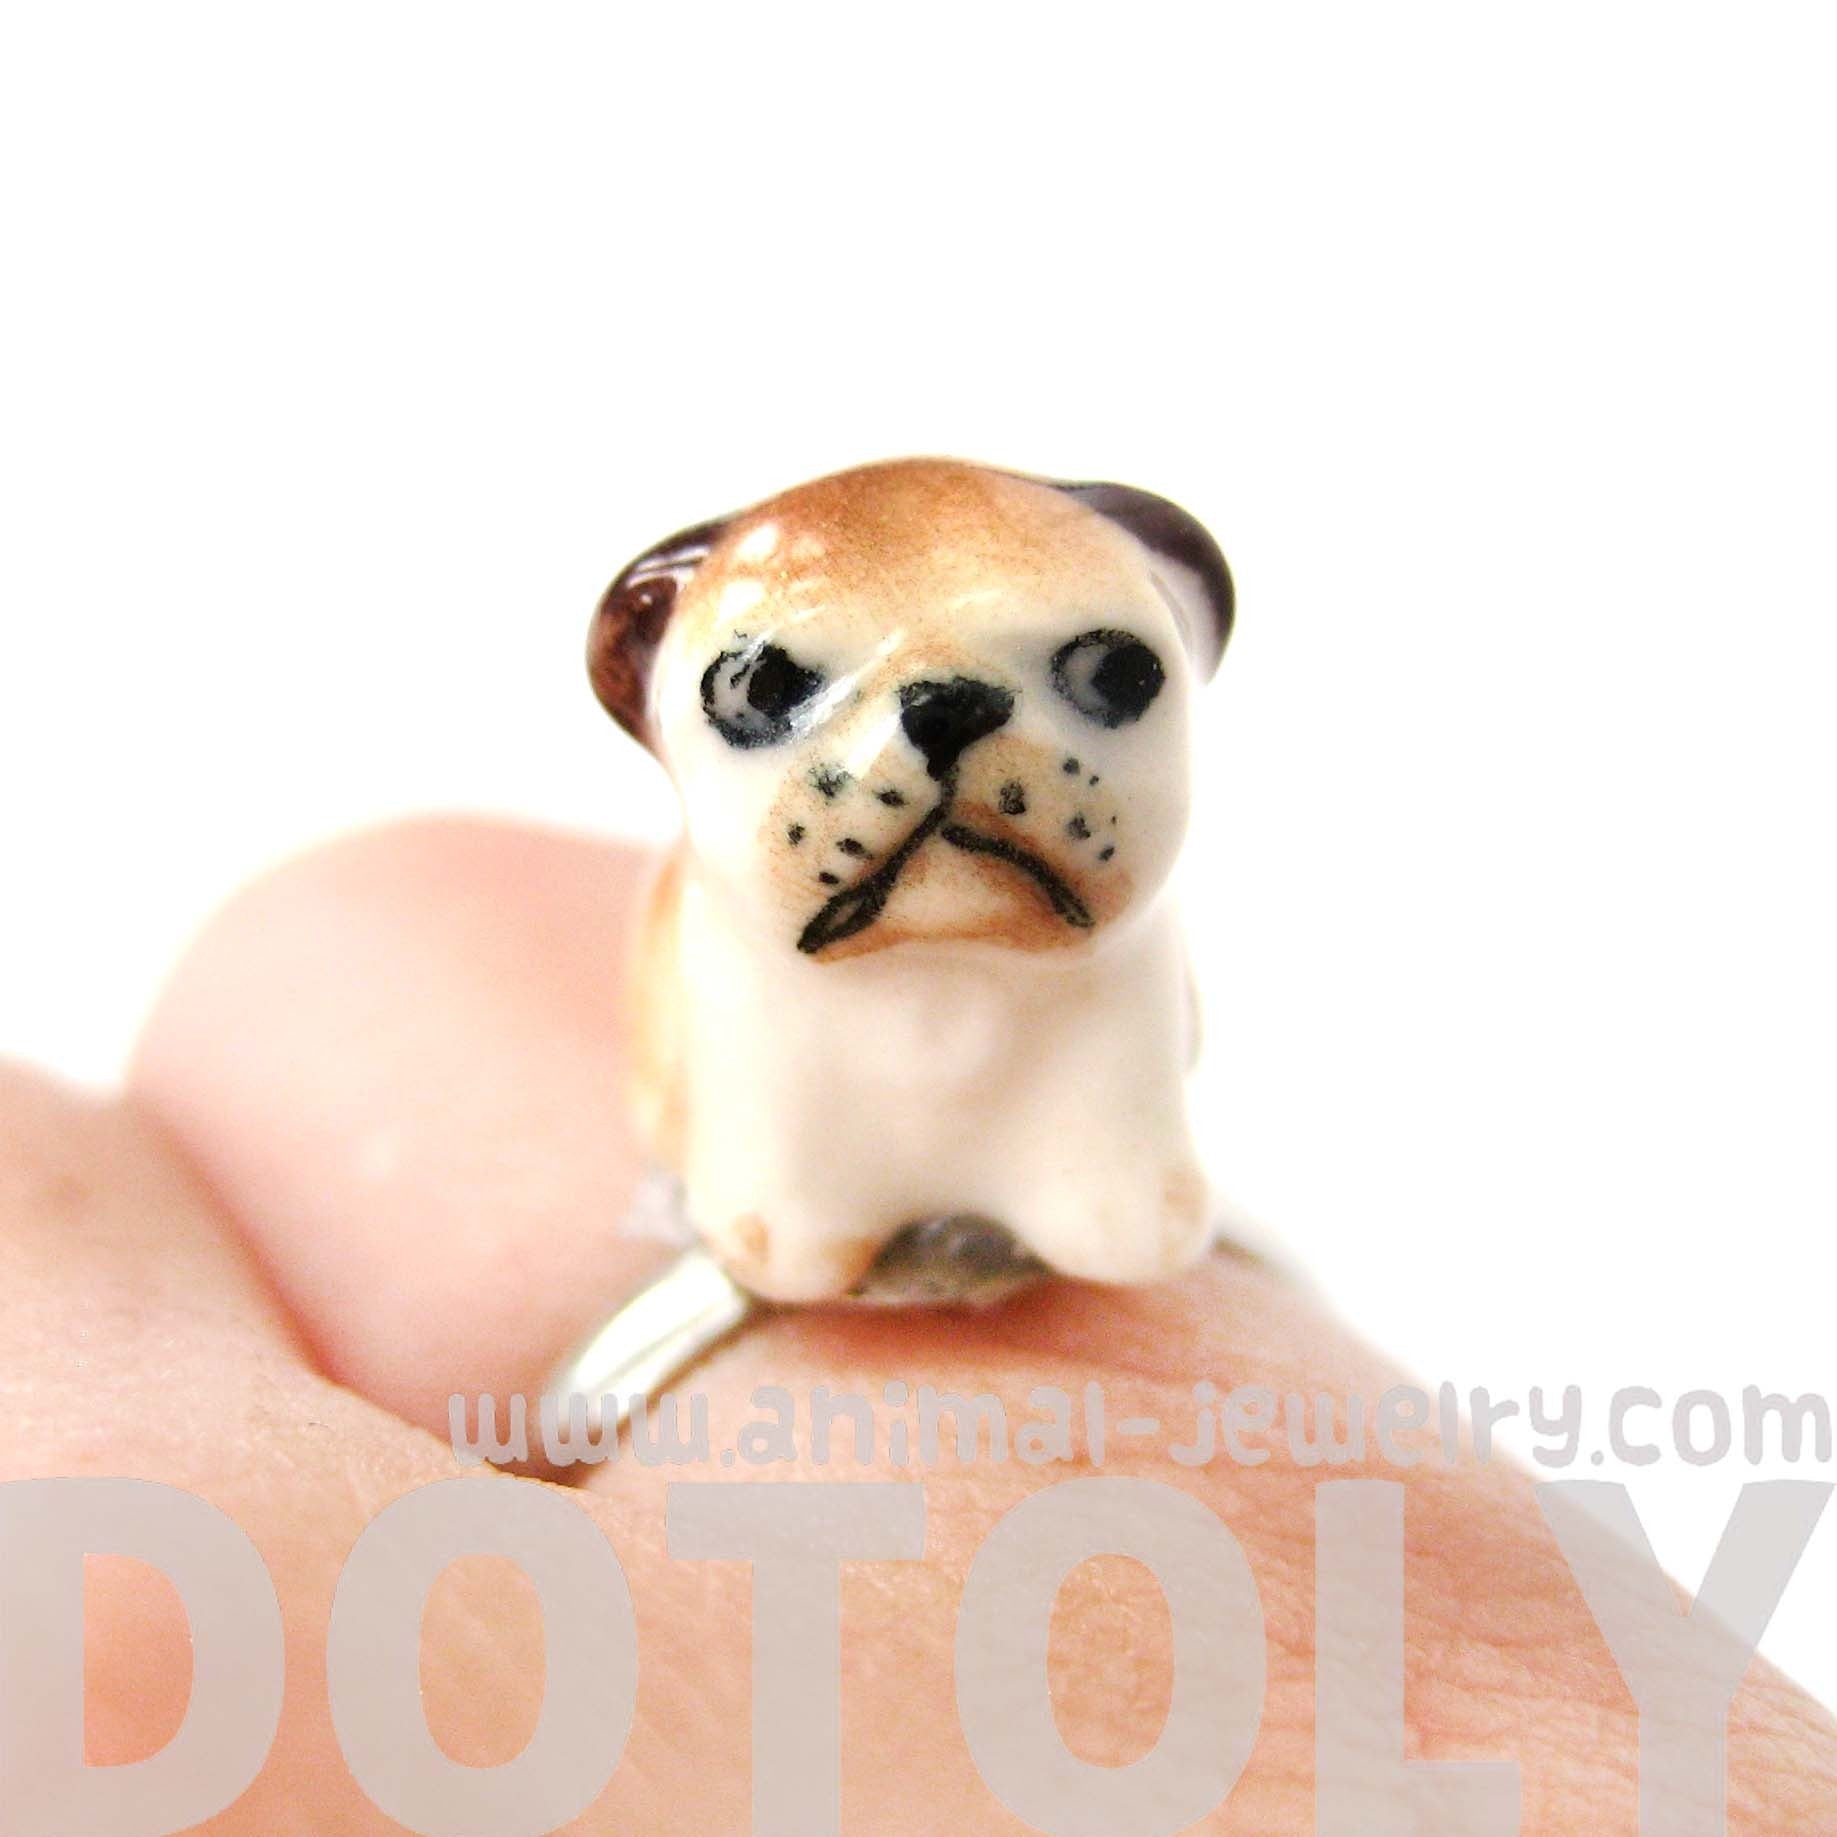 porcelain-ceramic-grumpy-bulldog-puppy-dog-animal-adjustable-ring-handmade